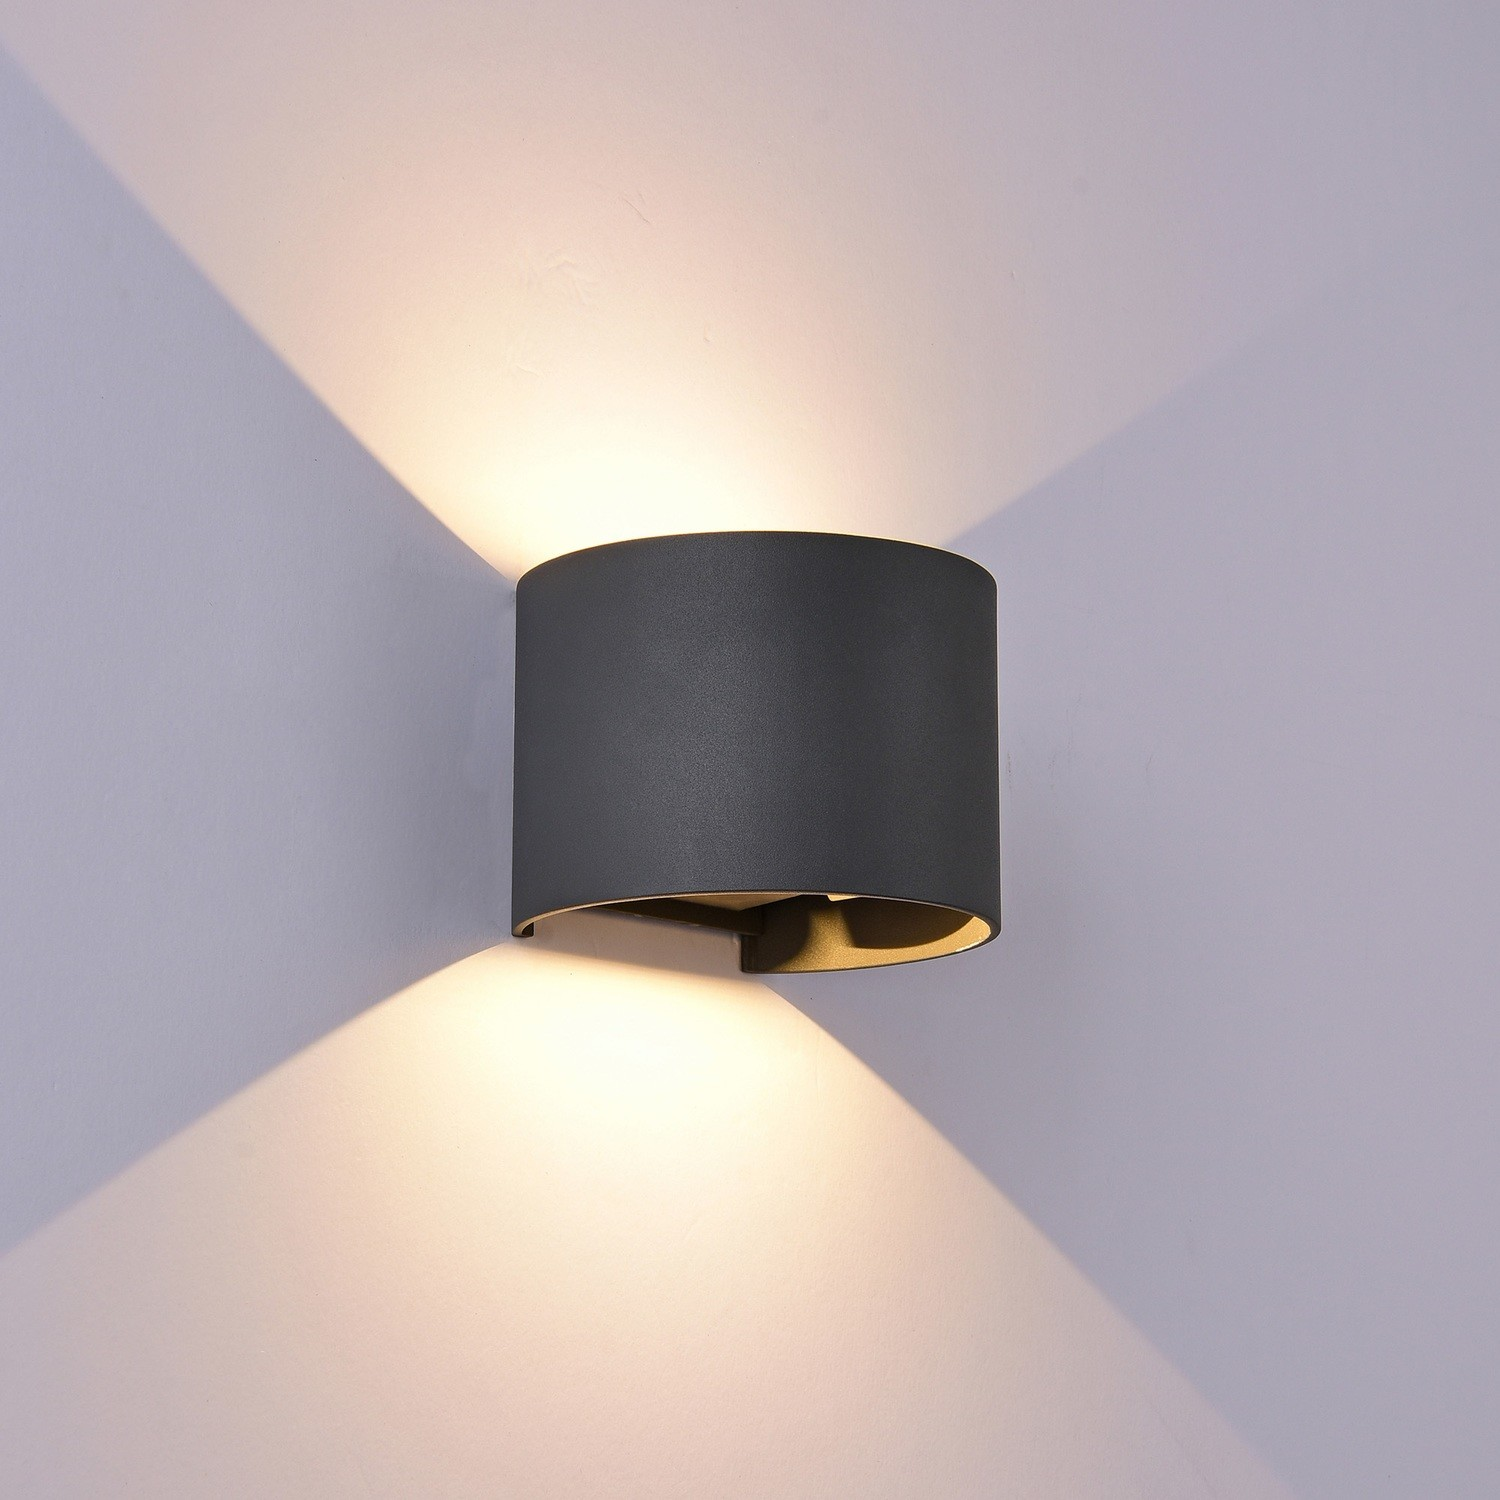 Davos Wall Lamp cylinder, 12W LED, 3000K, 1100lm, IP54, Anthracite